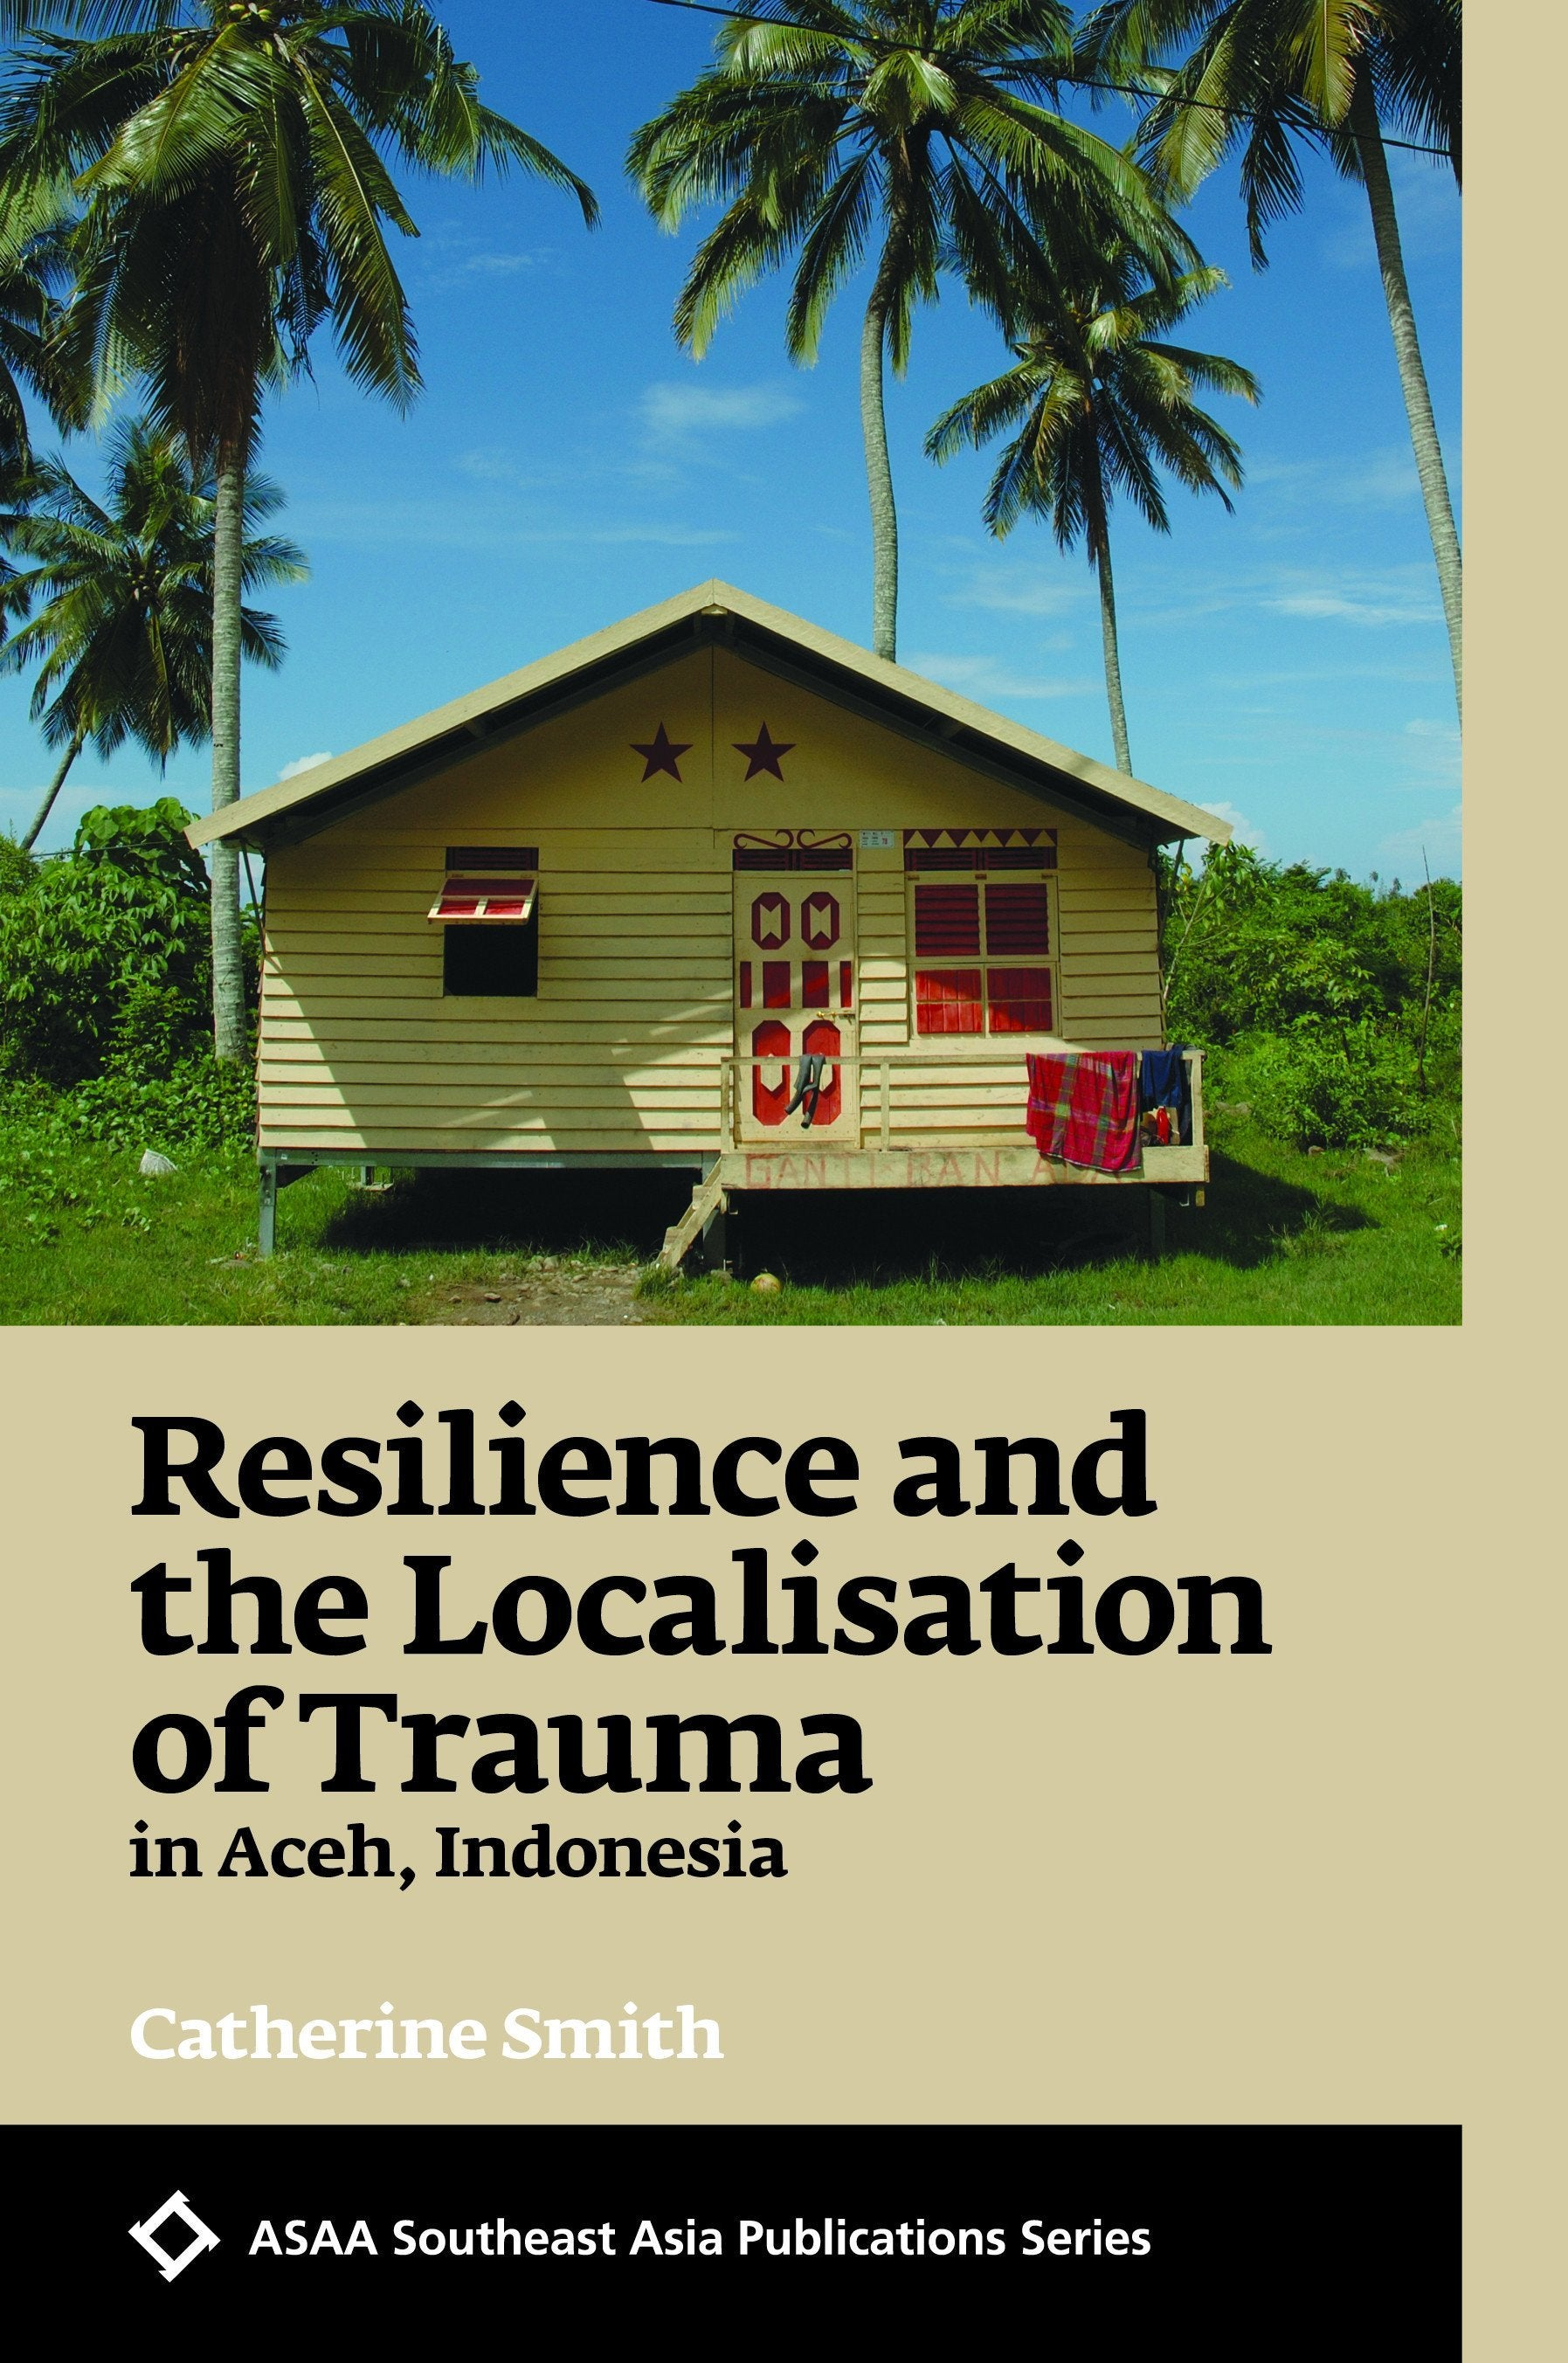 Resilience and the Localisation of Trauma in Aceh, Indonesia